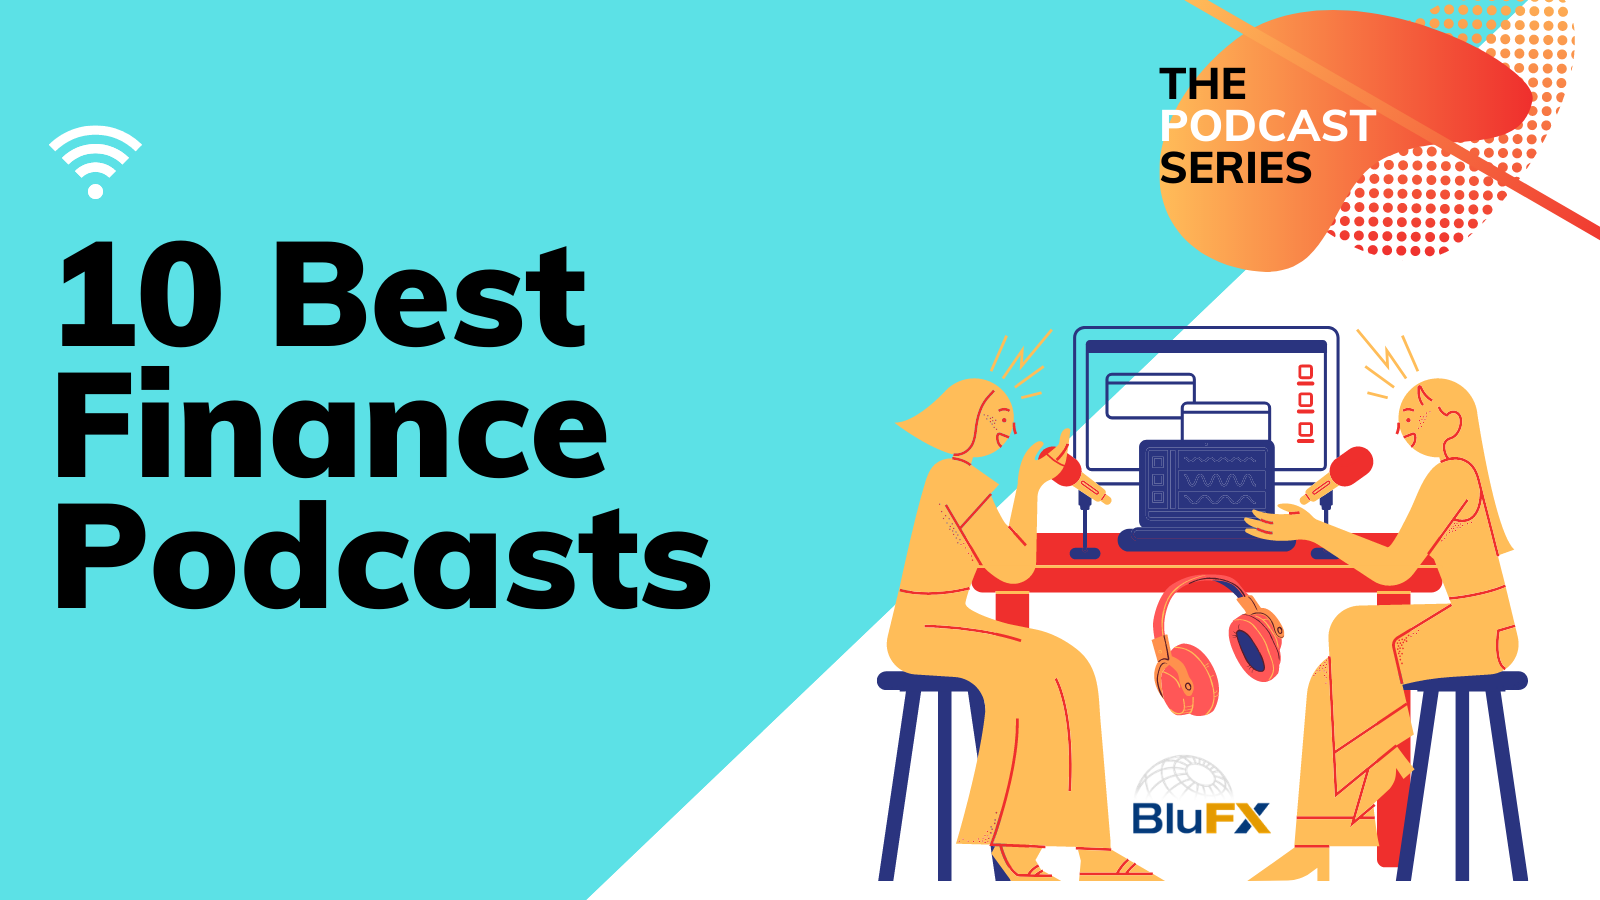 10 Best Finance Podcasts